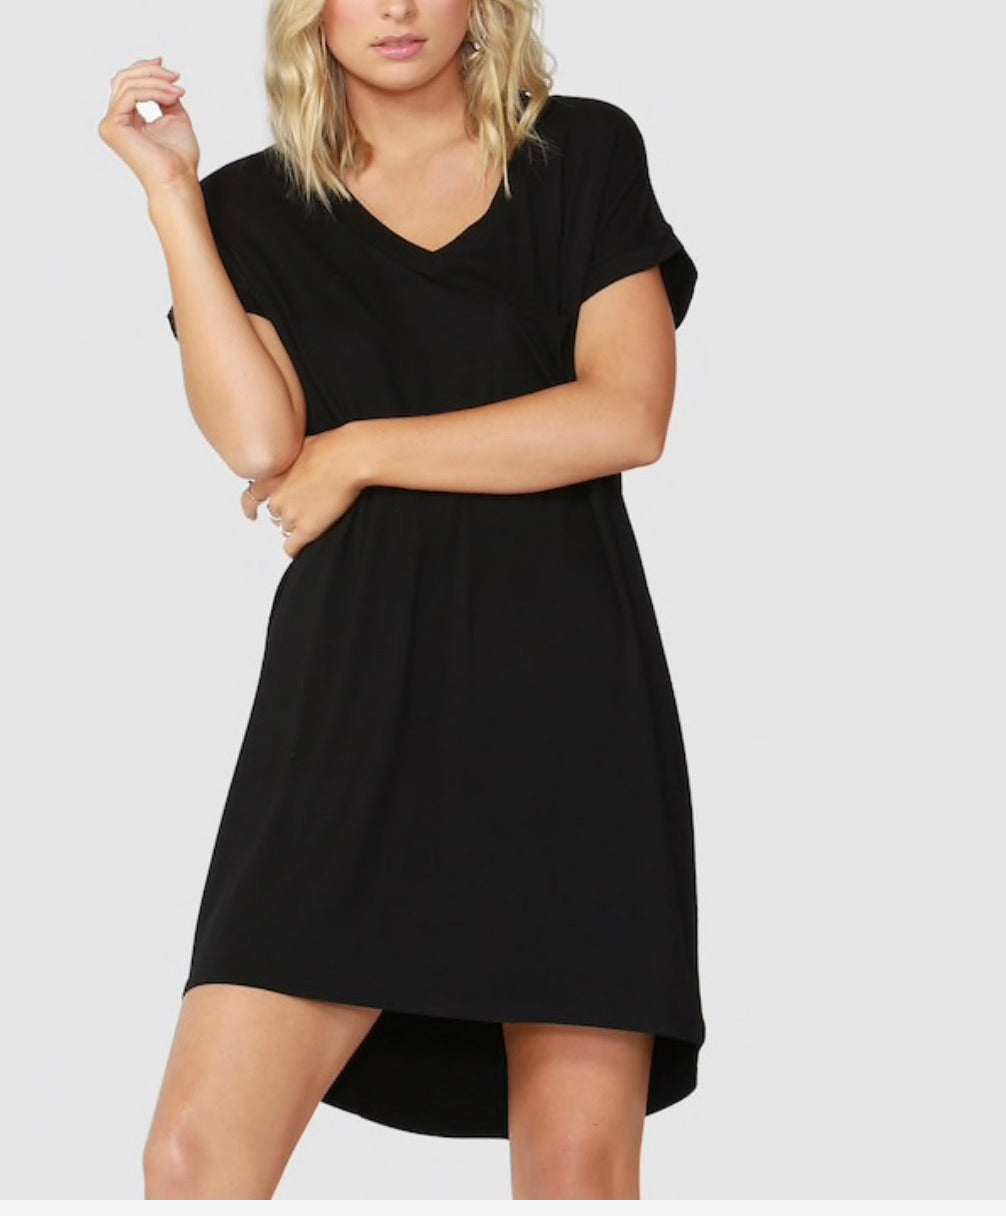 Arizona Dress - Black